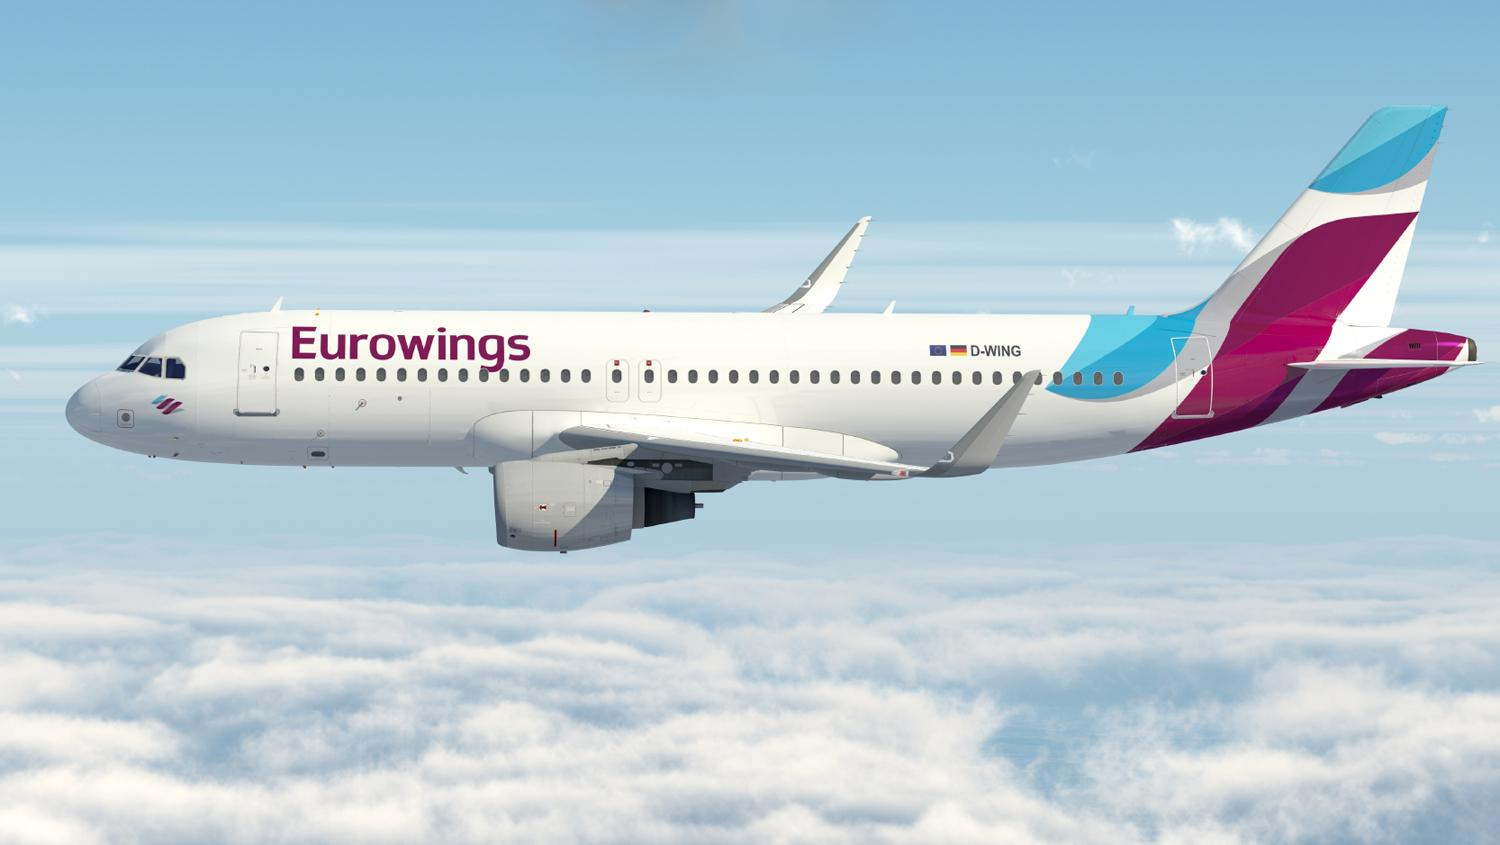 Eurowings has been heavily criticised for delays and cancellations.